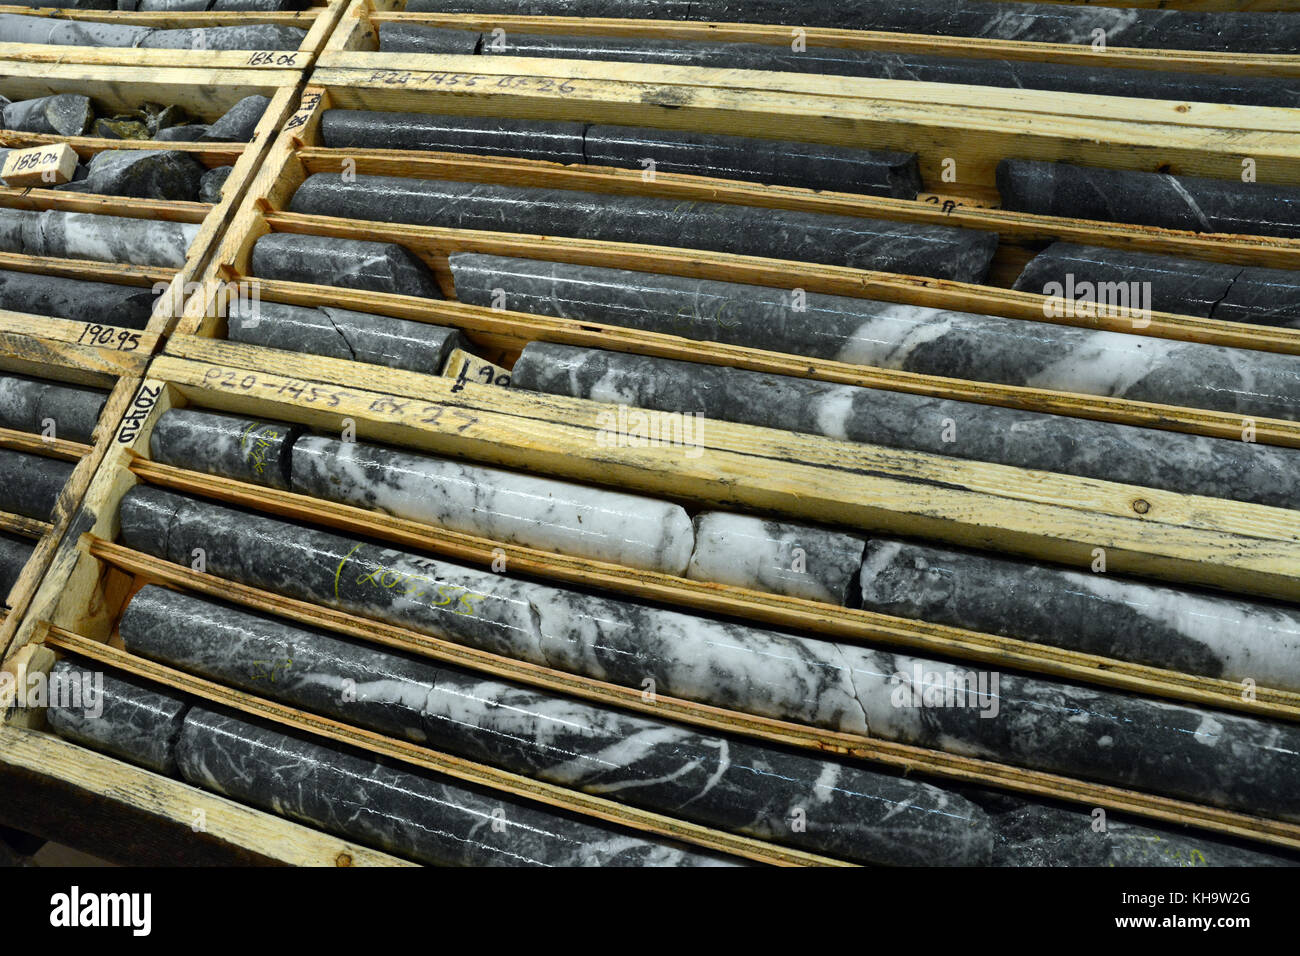 Rock core samples taken by a mining exploration company prospecting for gold, near Stewart, British Columbia, Canada. - Stock Image